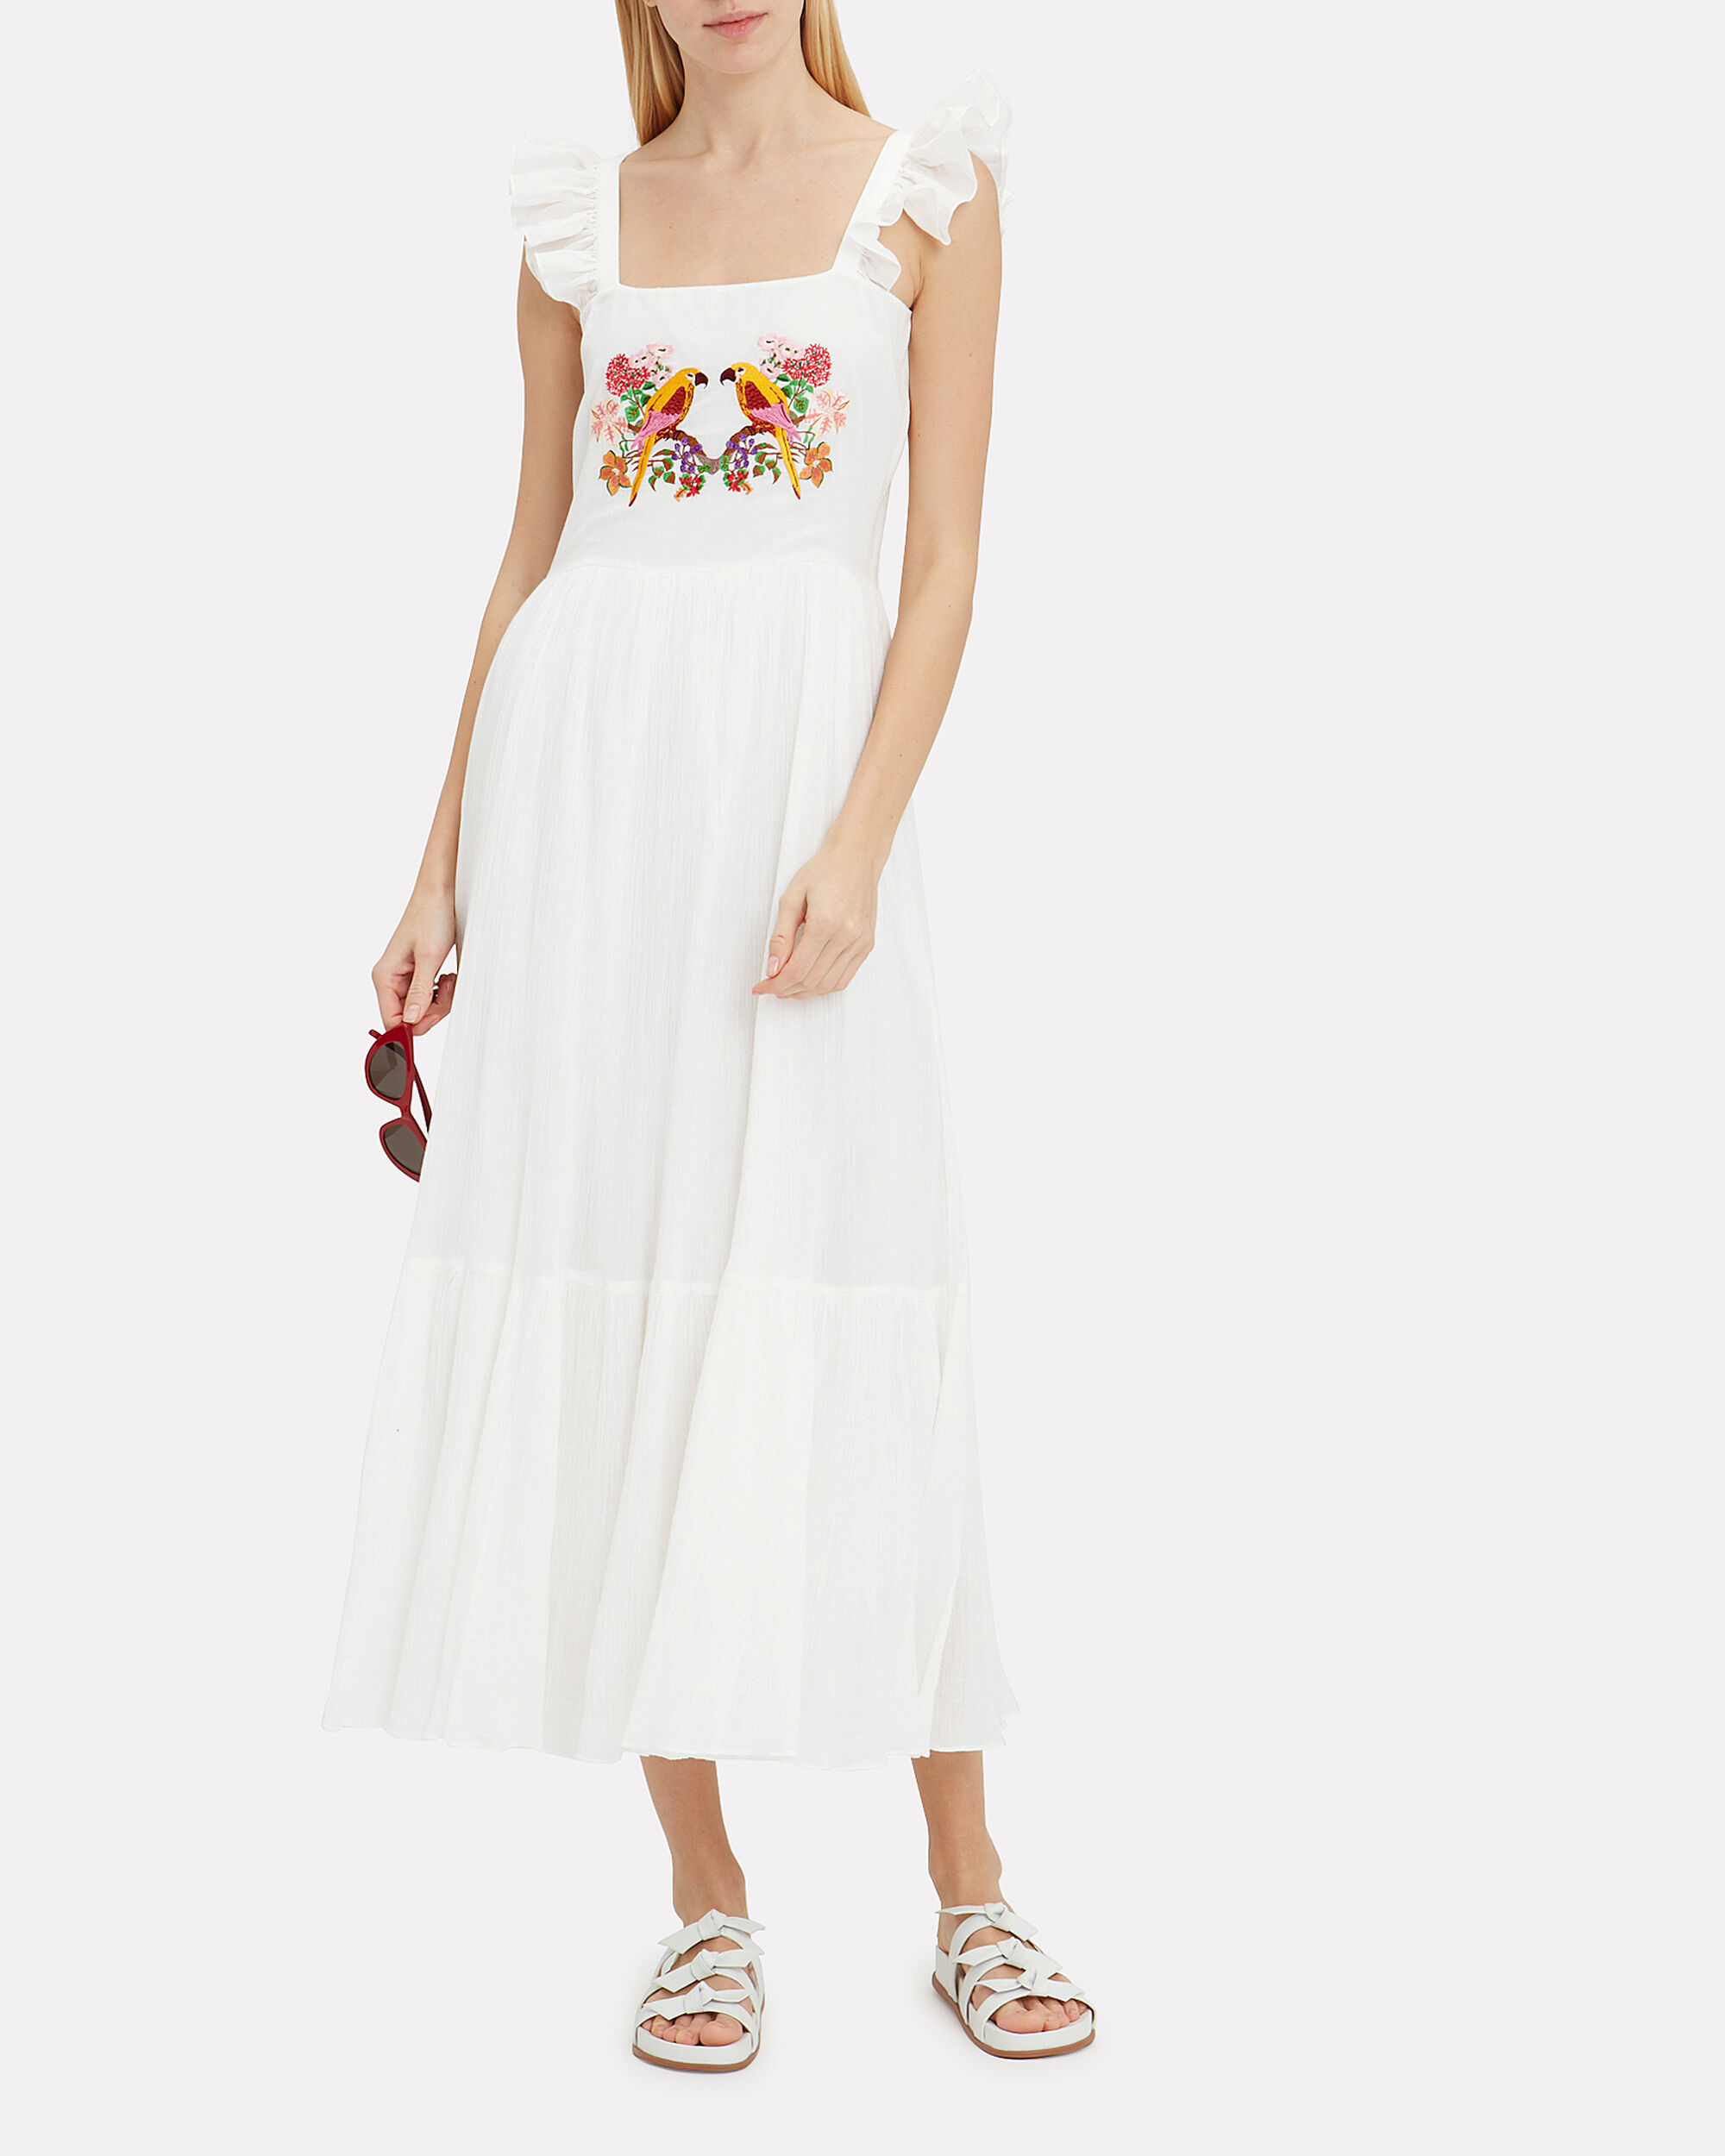 Kuna Embroidered Maxi Dress, WHITE/YELLOW/PINK, hi-res